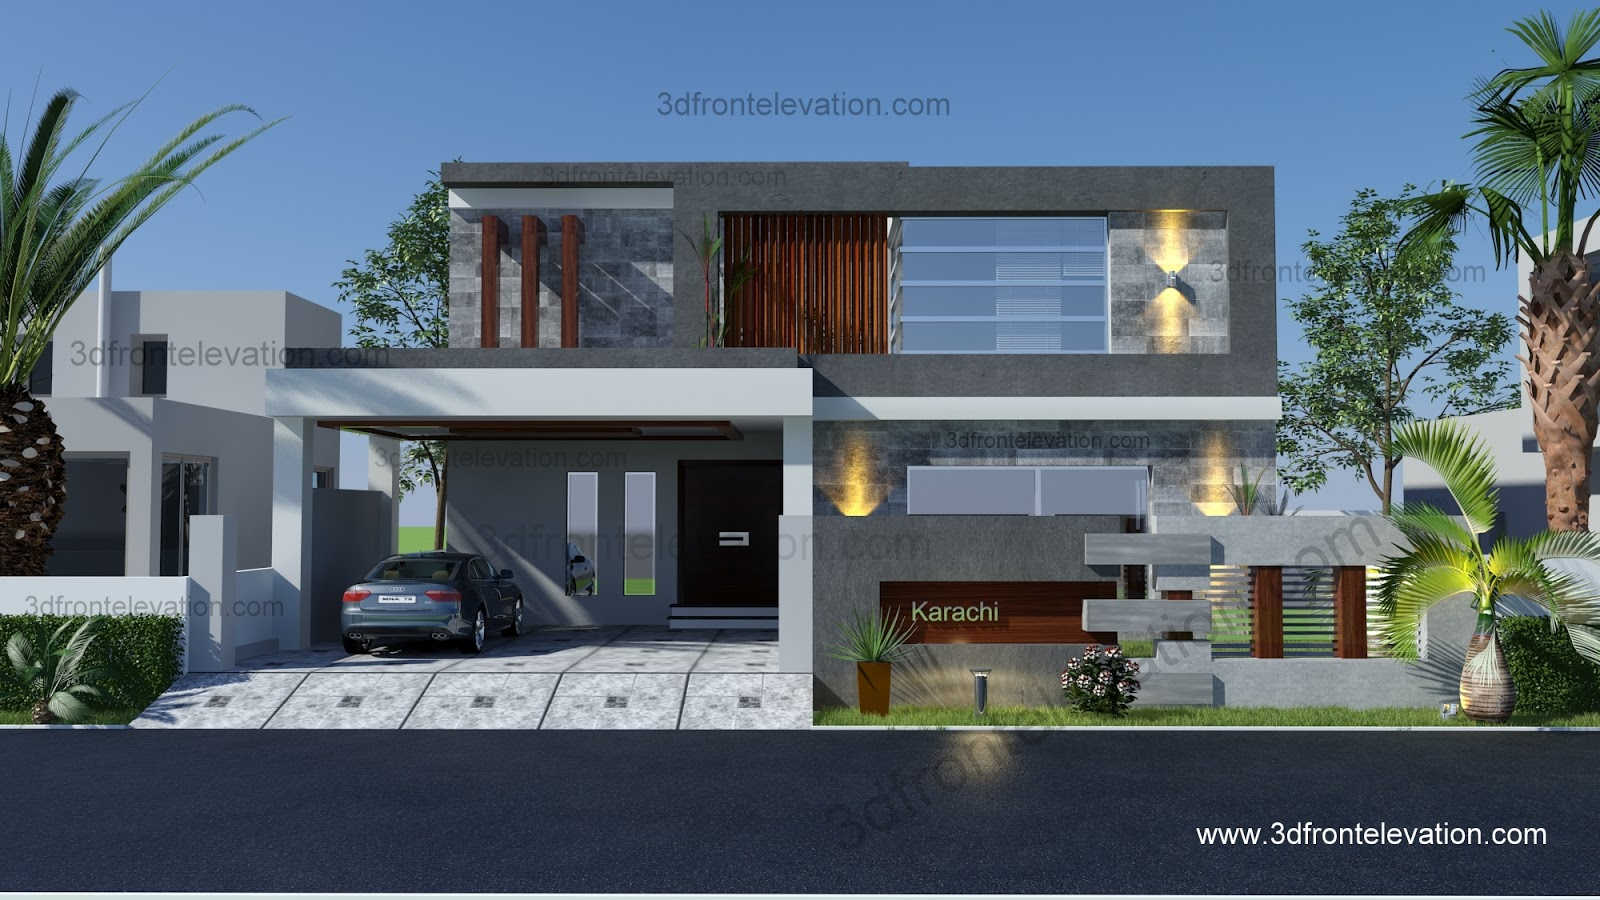 Front Elevation Of House In Karachi : D front elevation portfolio